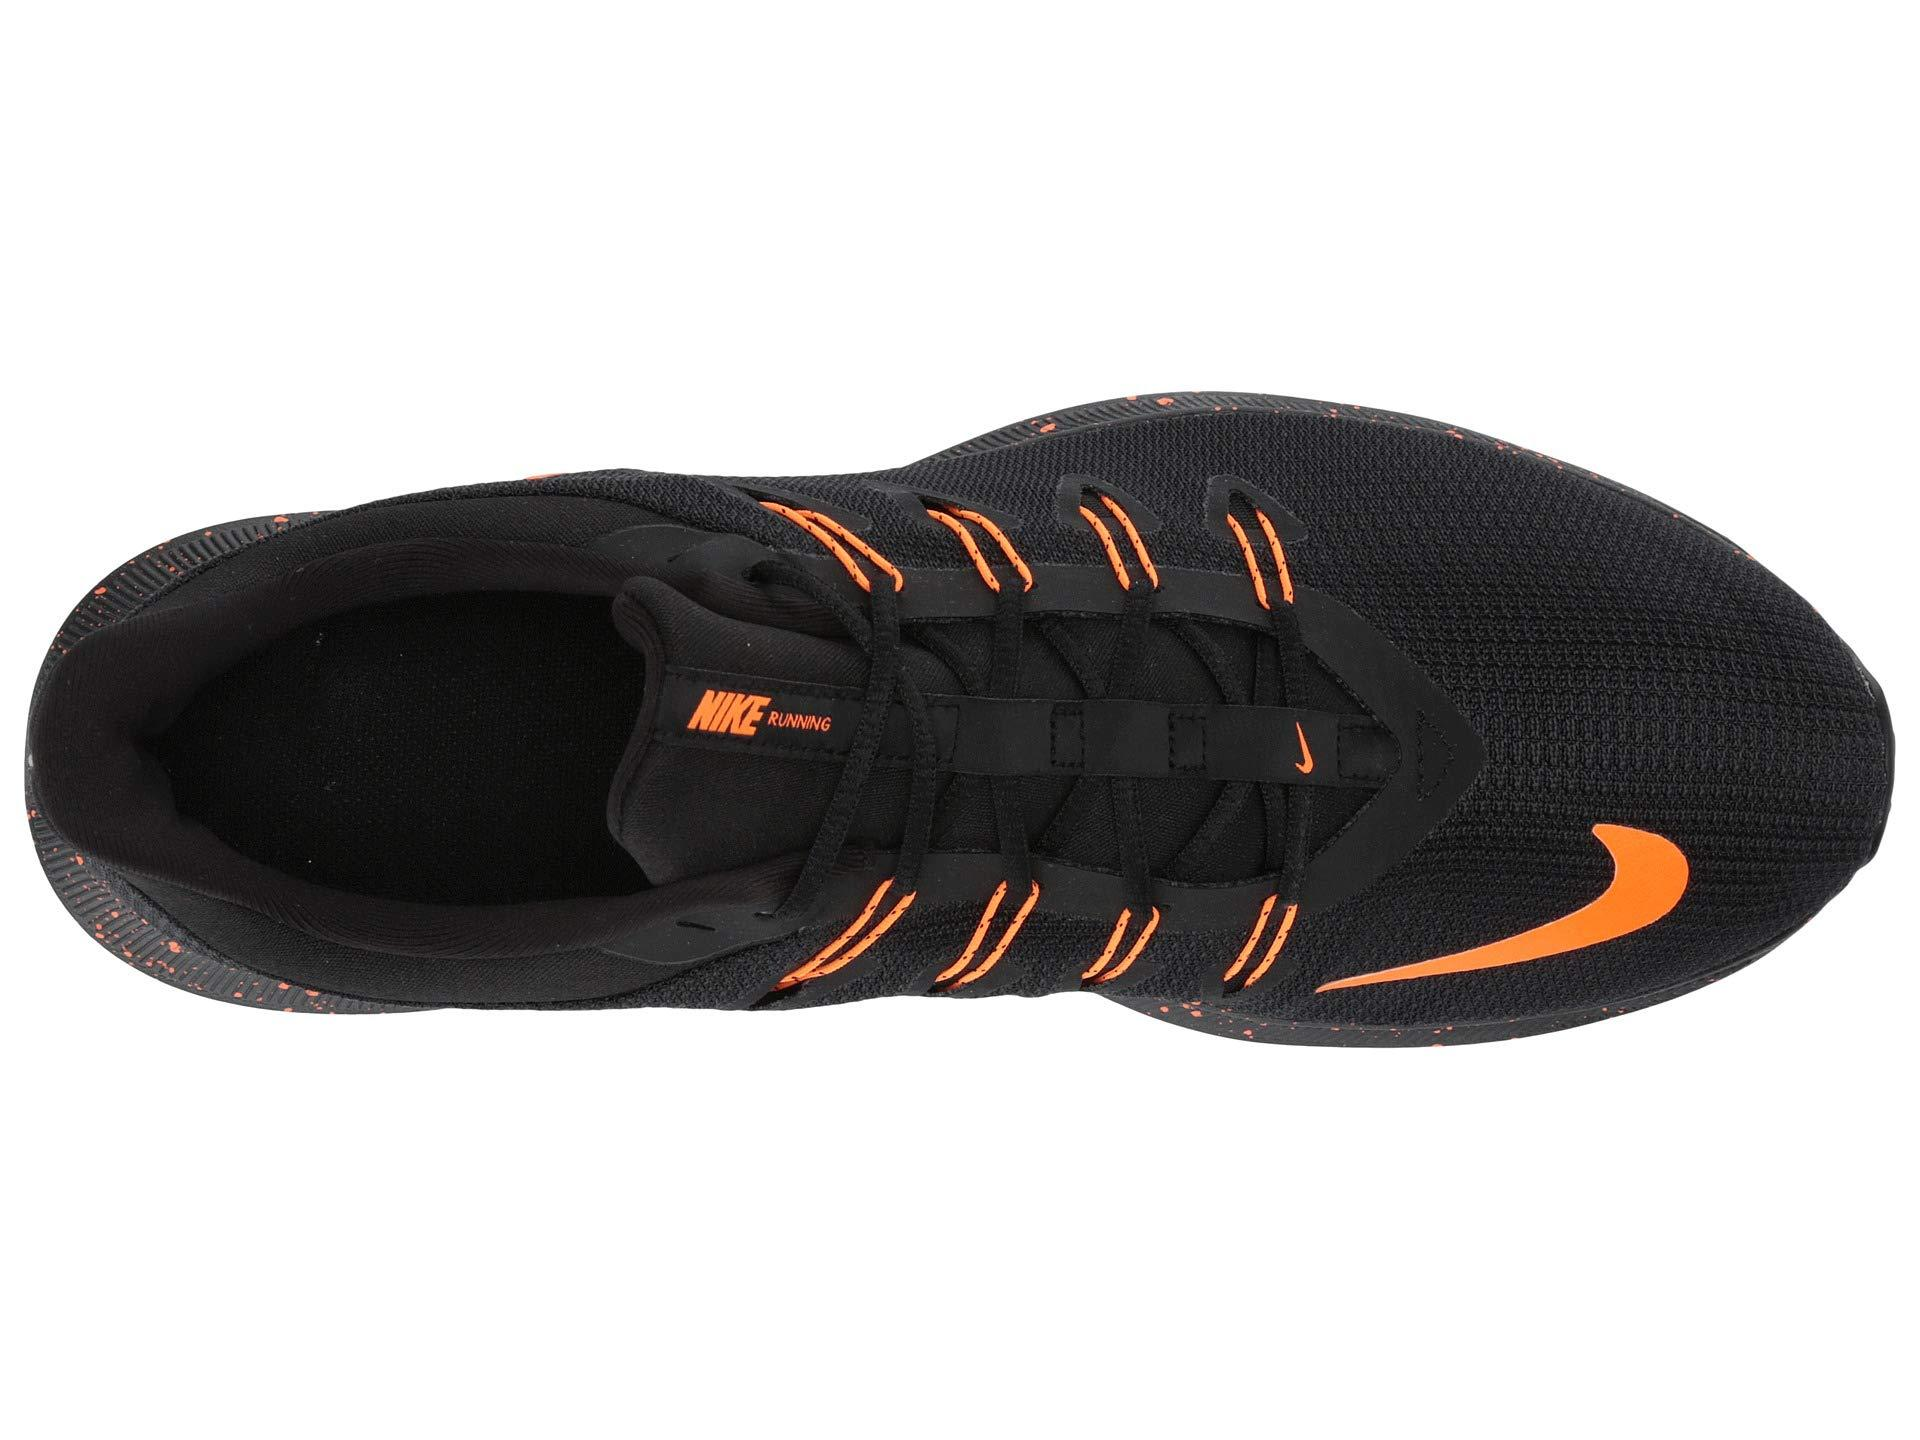 Nike Rubber Quest Athletic Shoe in